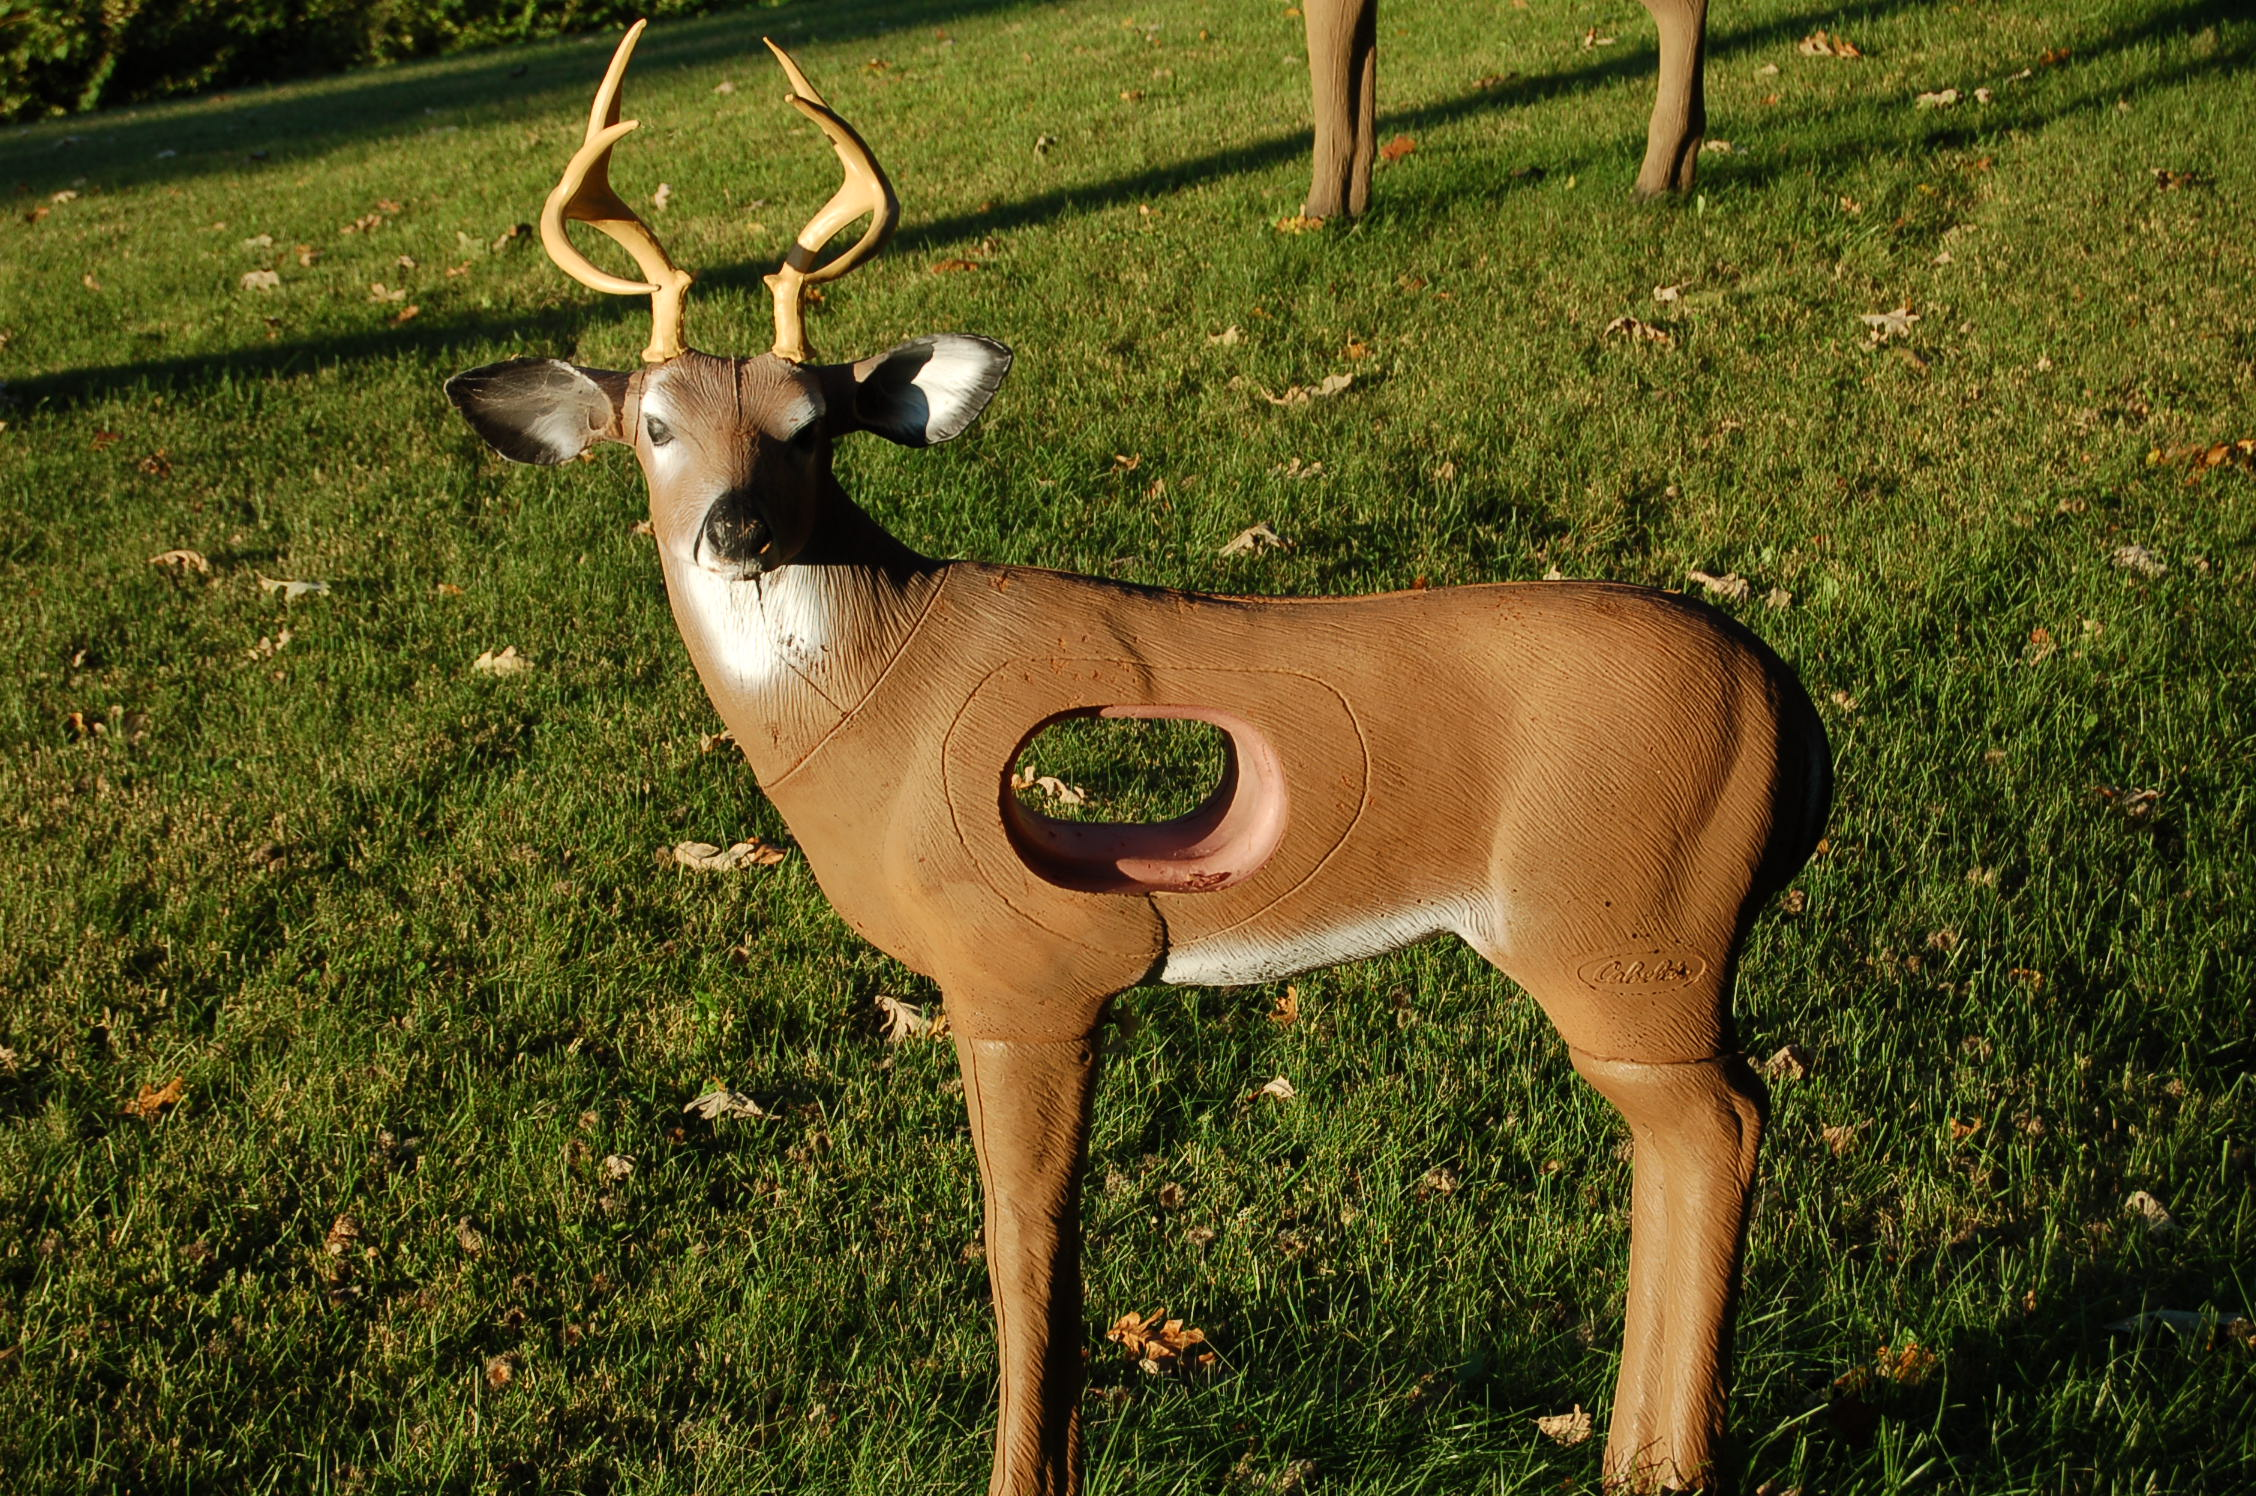 kill buck singles Home the gun raffle singles or collections email for quote: curtis@vermontbiggametrophyclubcom leon grant buck - 183 state record typical.